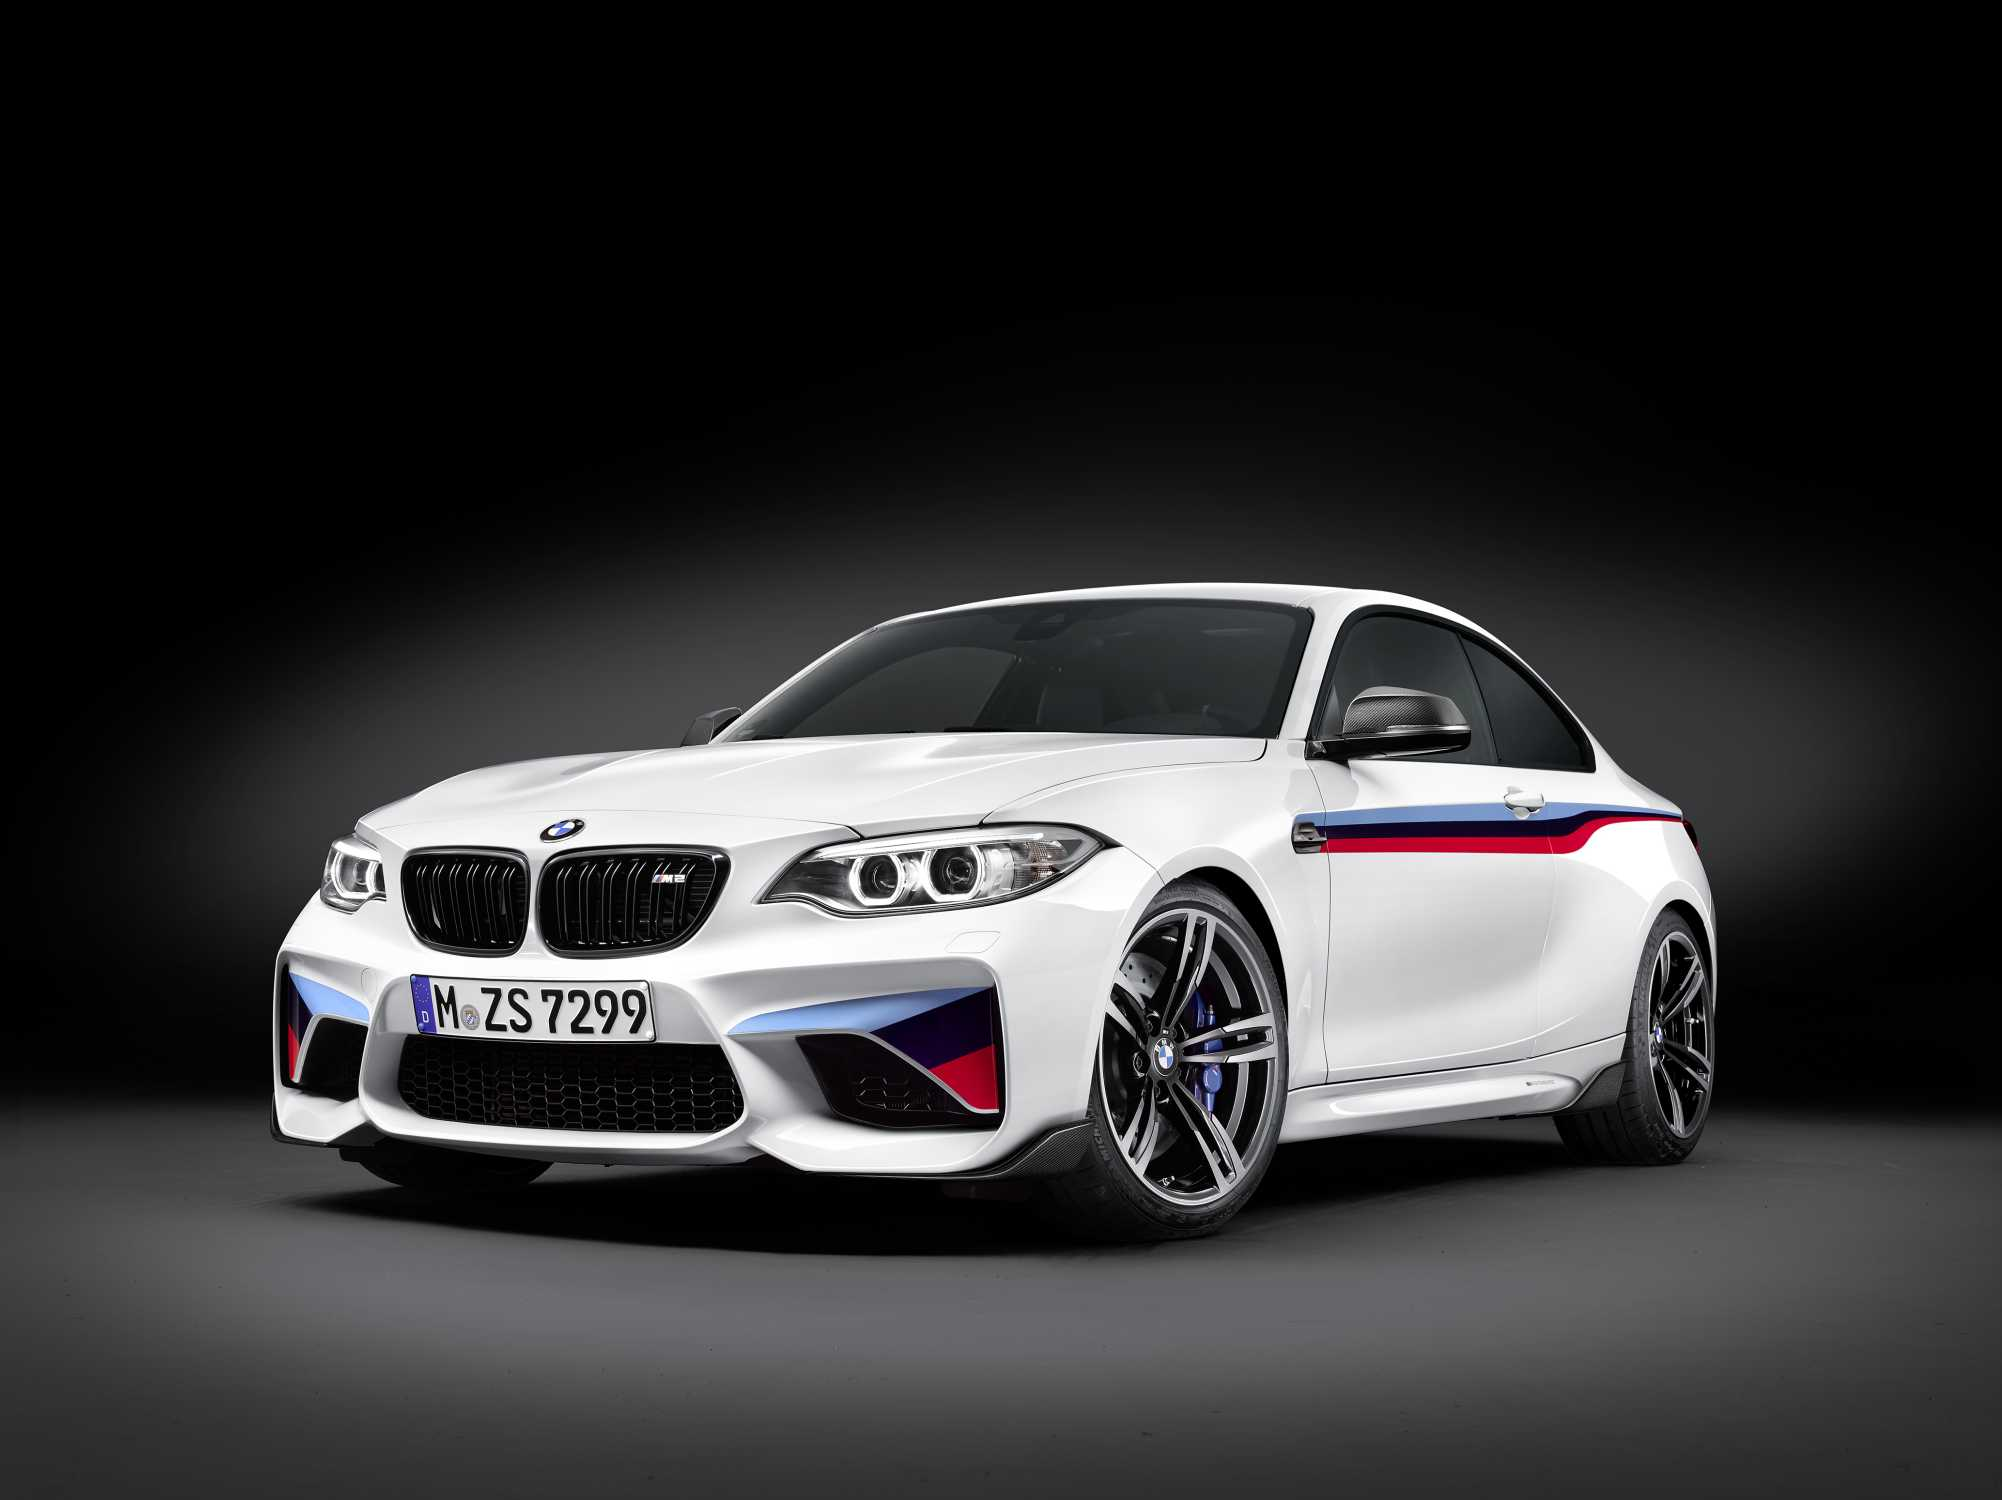 New Extensive Range Of Bmw M Performance Parts For The New